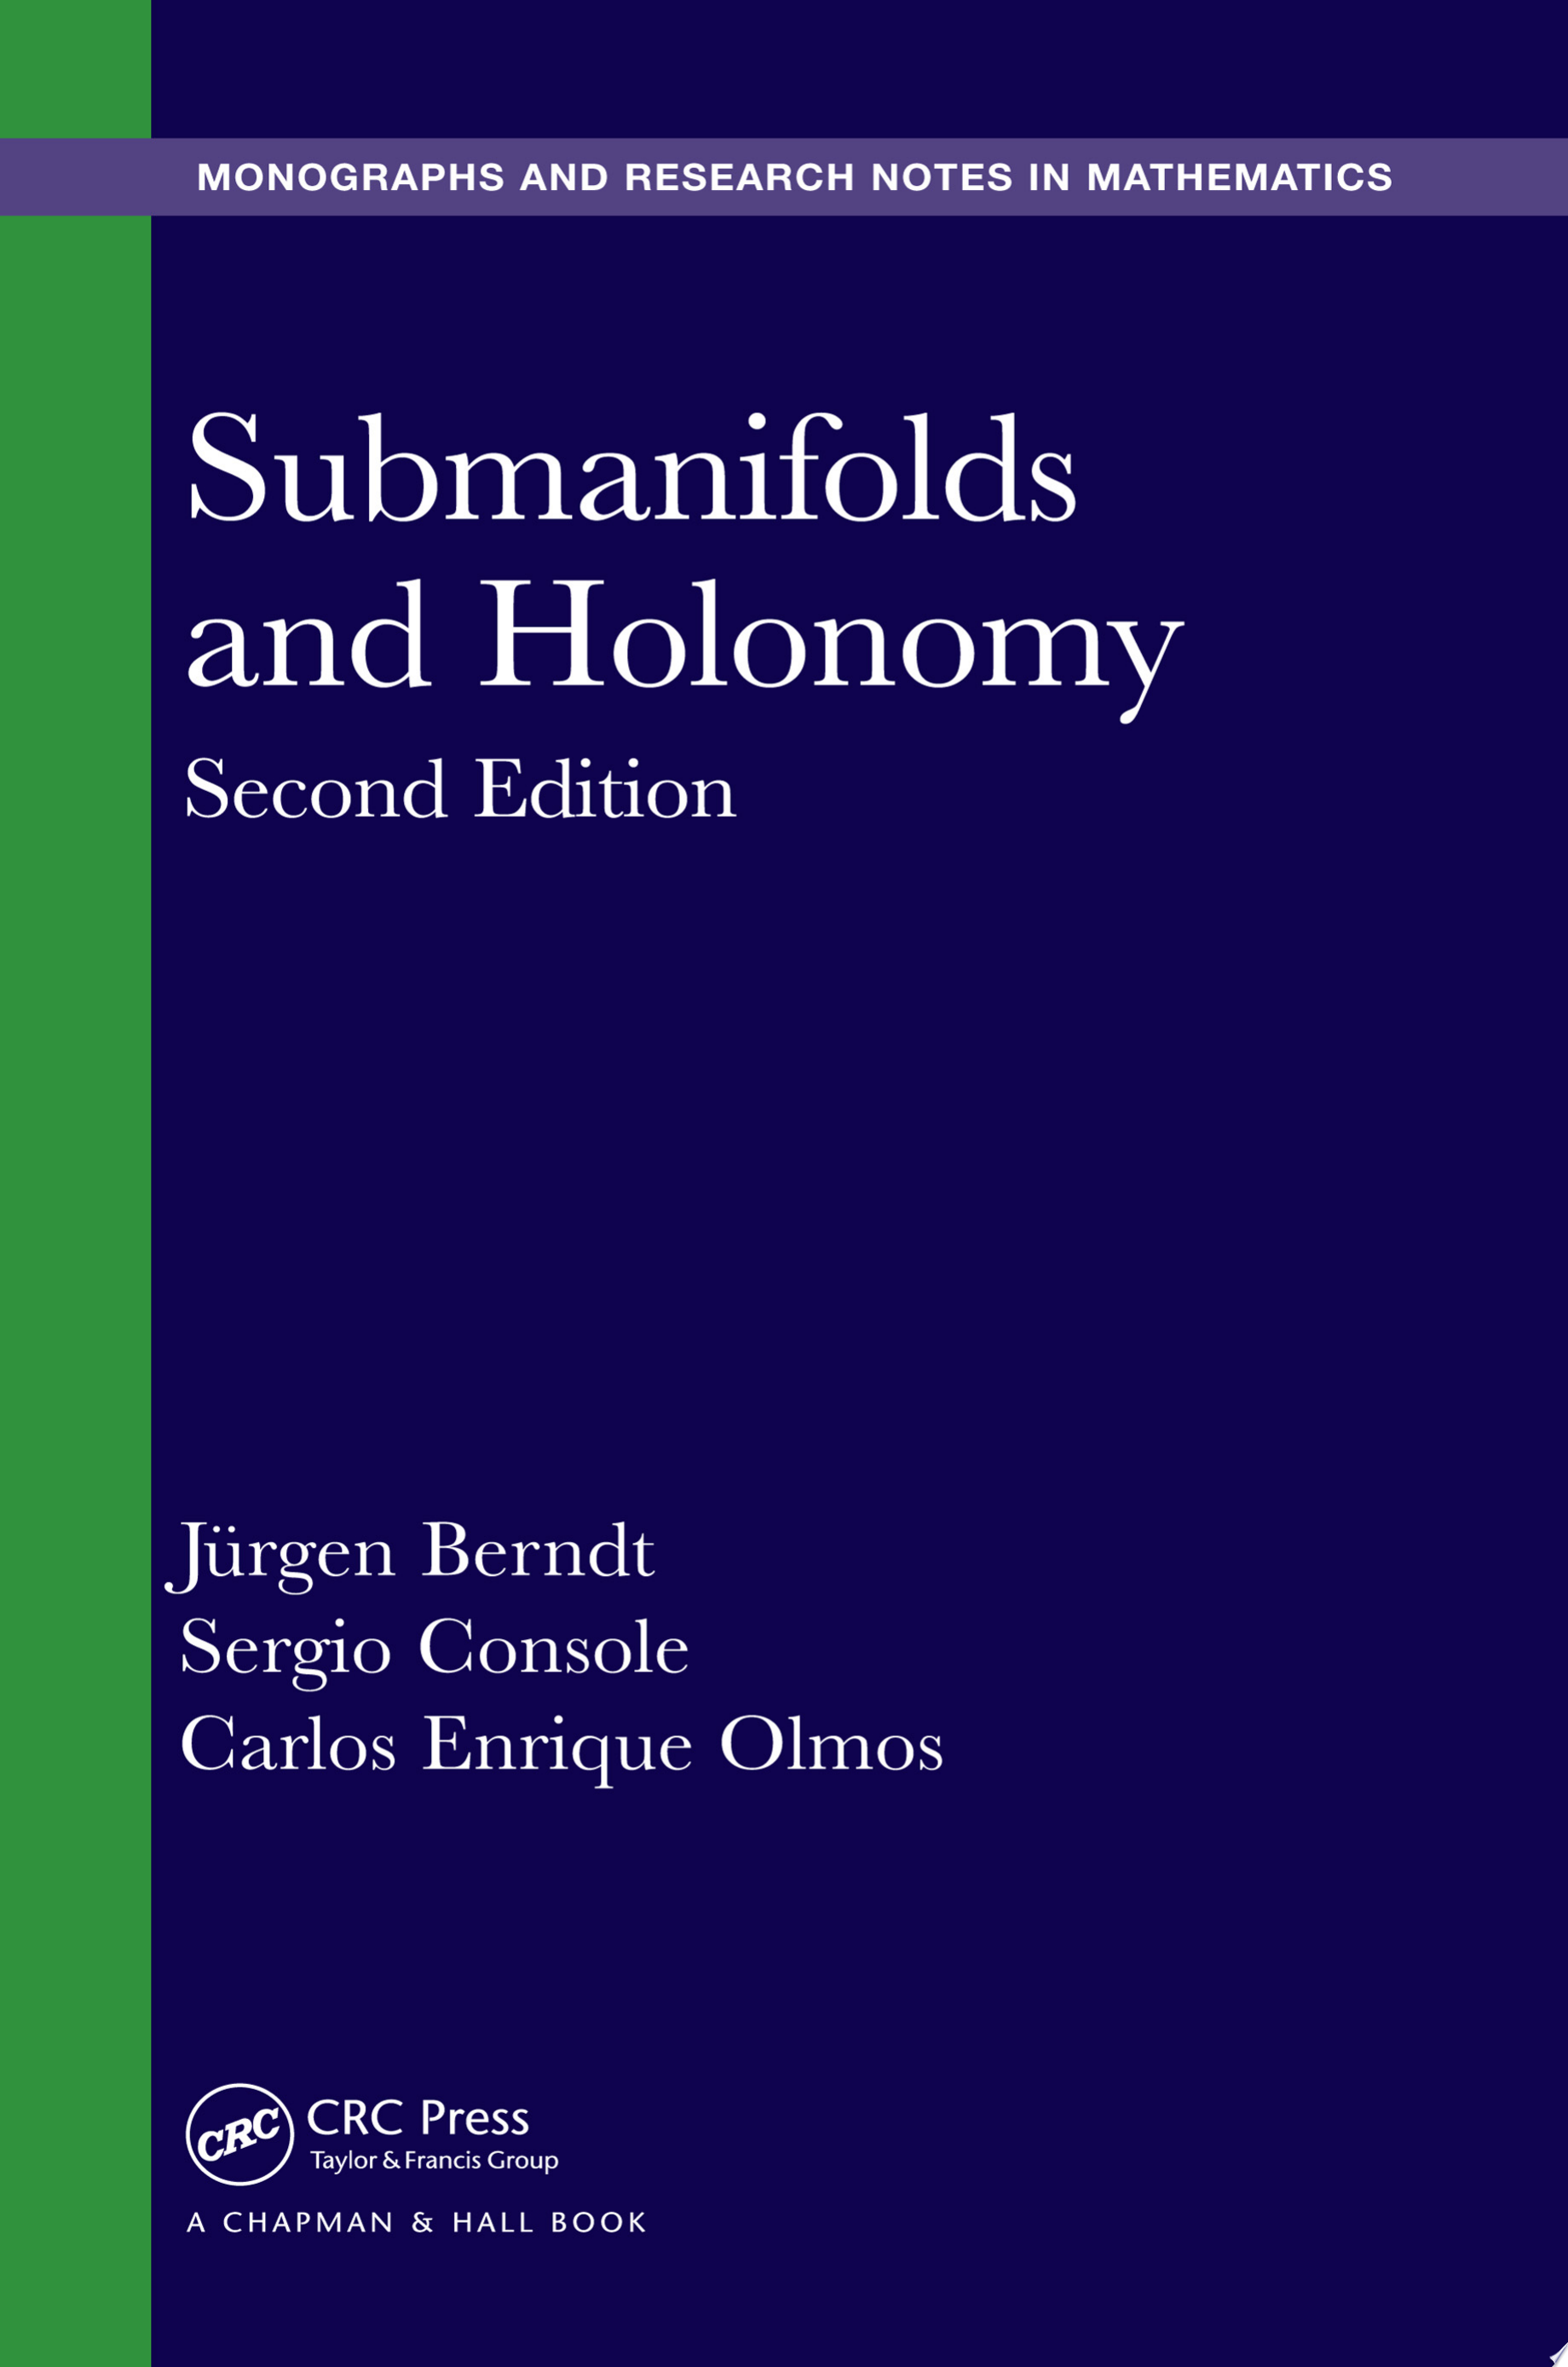 Submanifolds and Holonomy  Second Edition